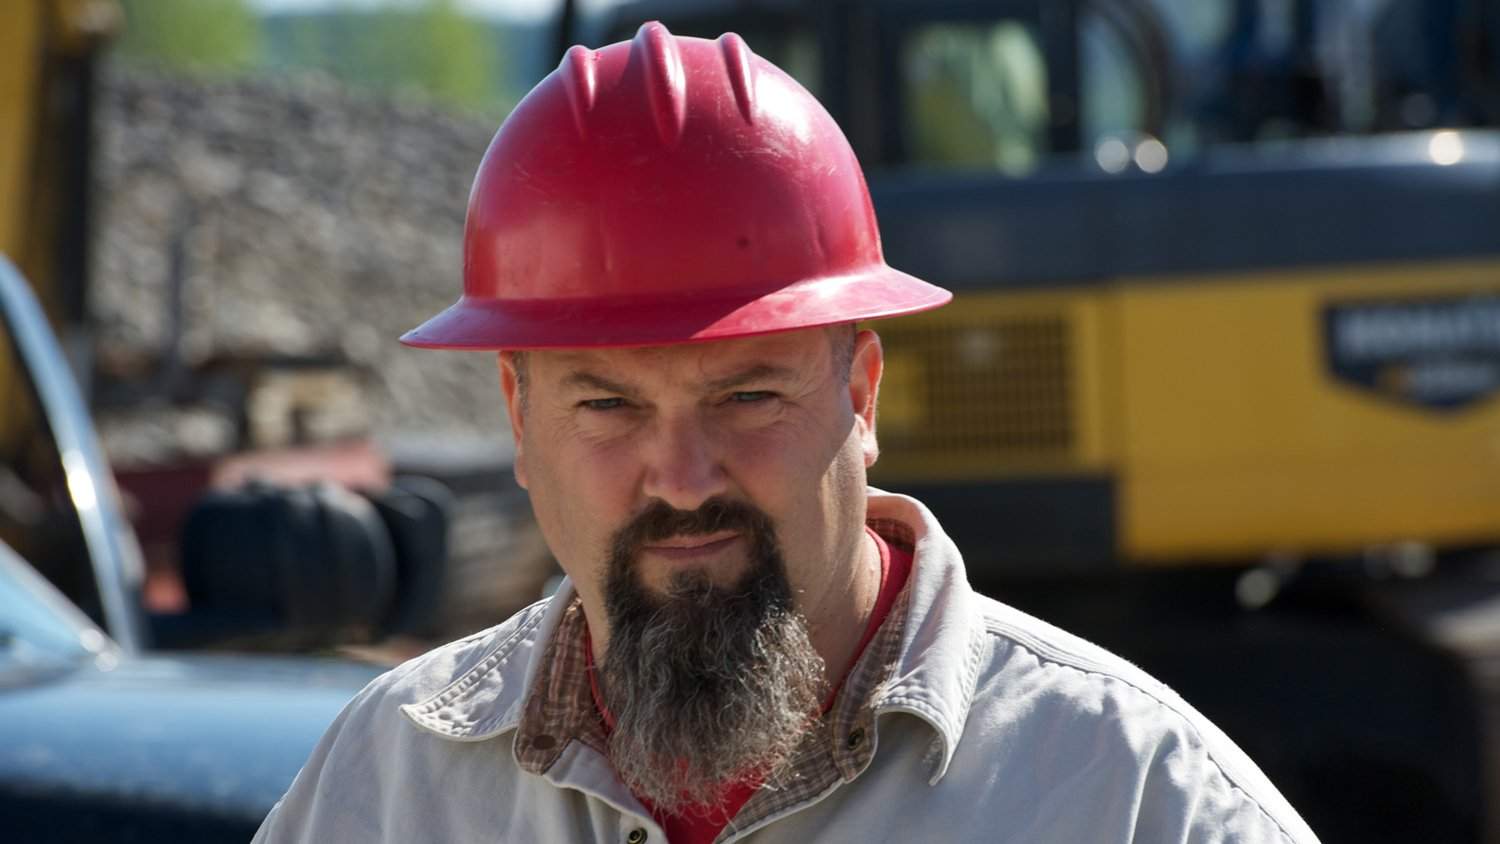 New Show for Todd Hoffman or Returning to Gold Rush?